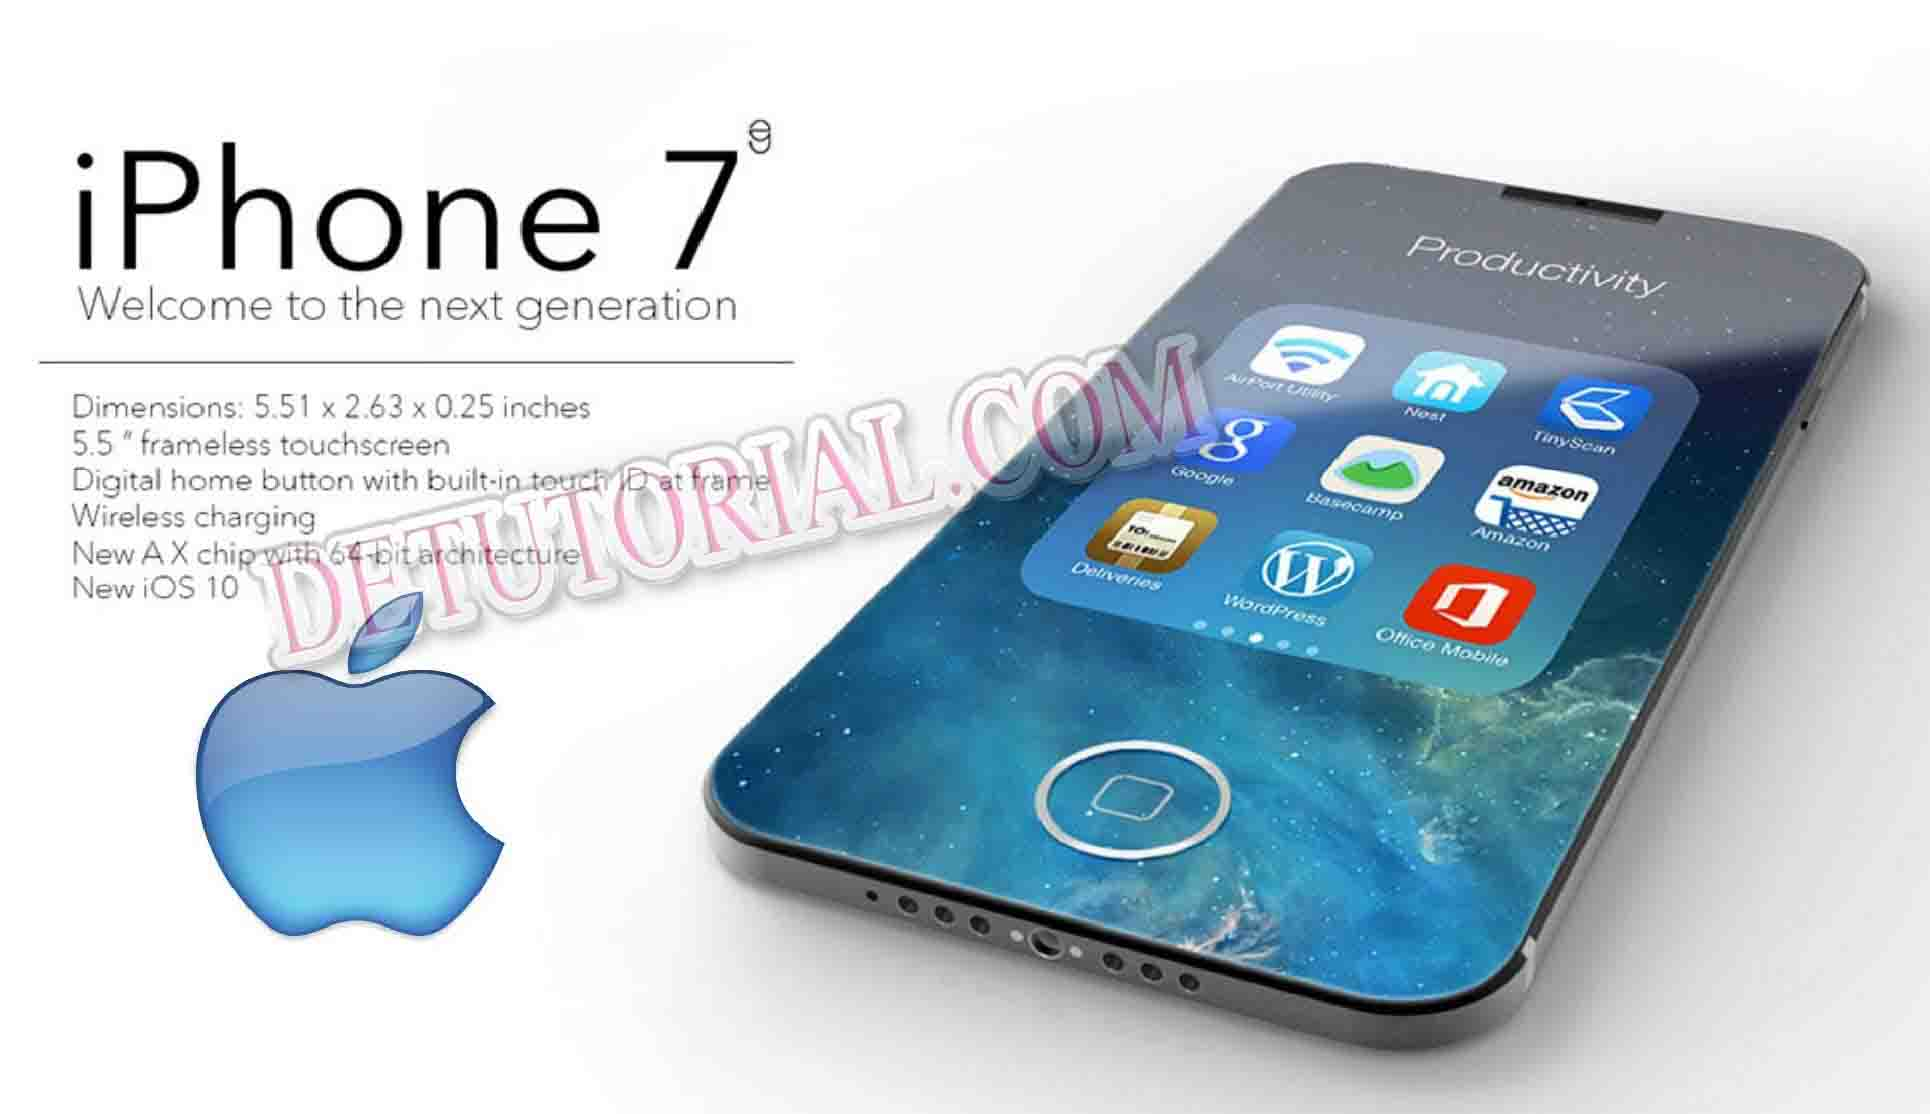 Produk Baru Iphone 7 Dengan Spek Gahar, Harga dan Spesifikasi Apple Iphone 7 Plus, Harga dan Spesifikasi Apple Iphone 7, harga spek iphone 7, Harga Spesifikasi Apple Iphone 7 dan Iphone 7 Plus